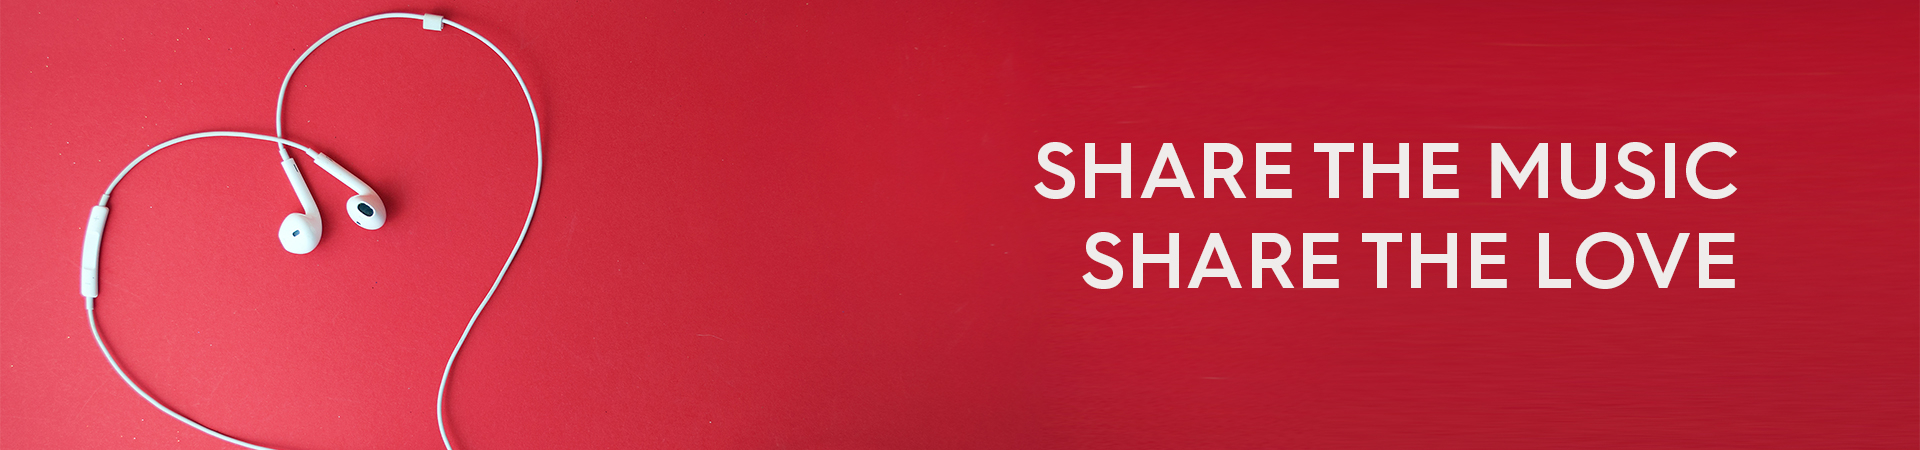 Share the music. Share the love.